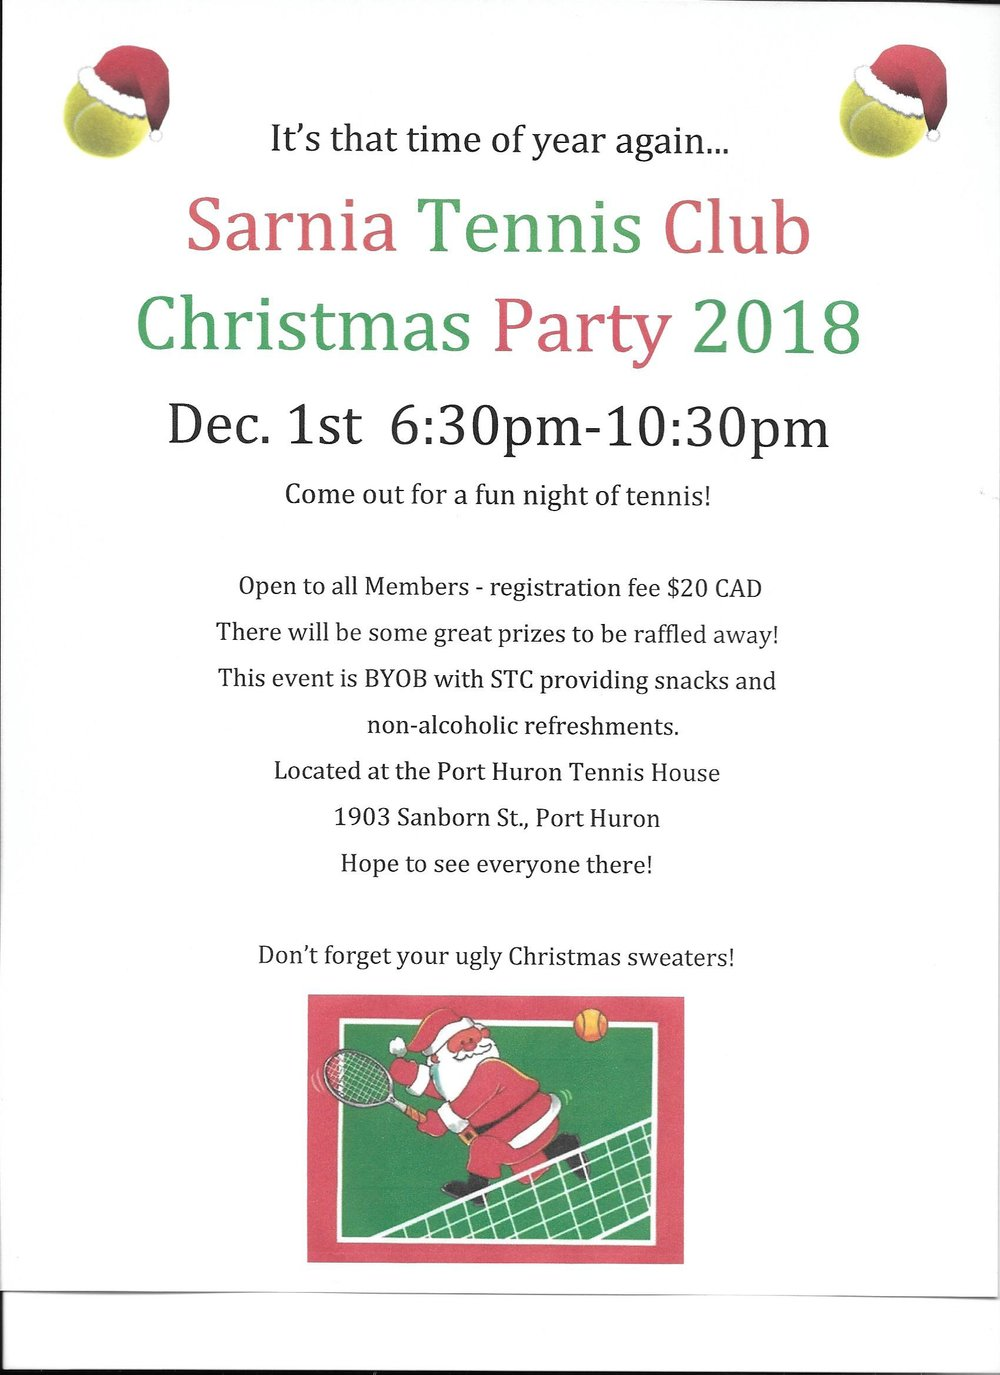 Sarnia Tennis Club Christmas Party 2018.jpg